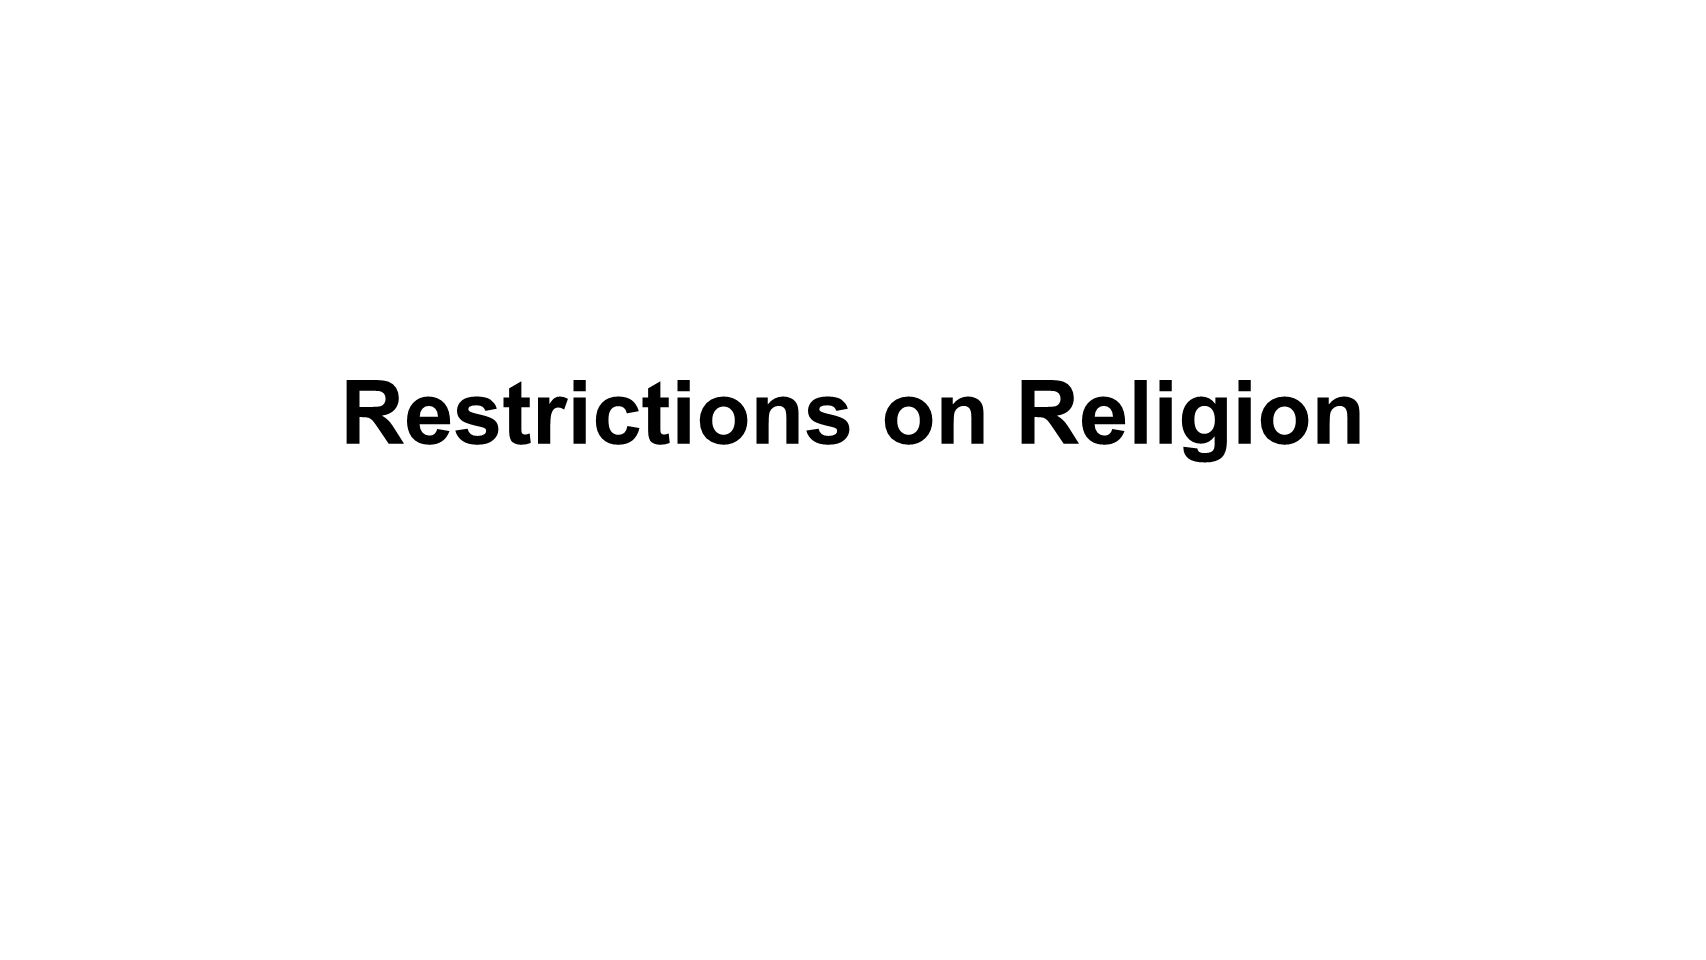 Restrictions on Religion